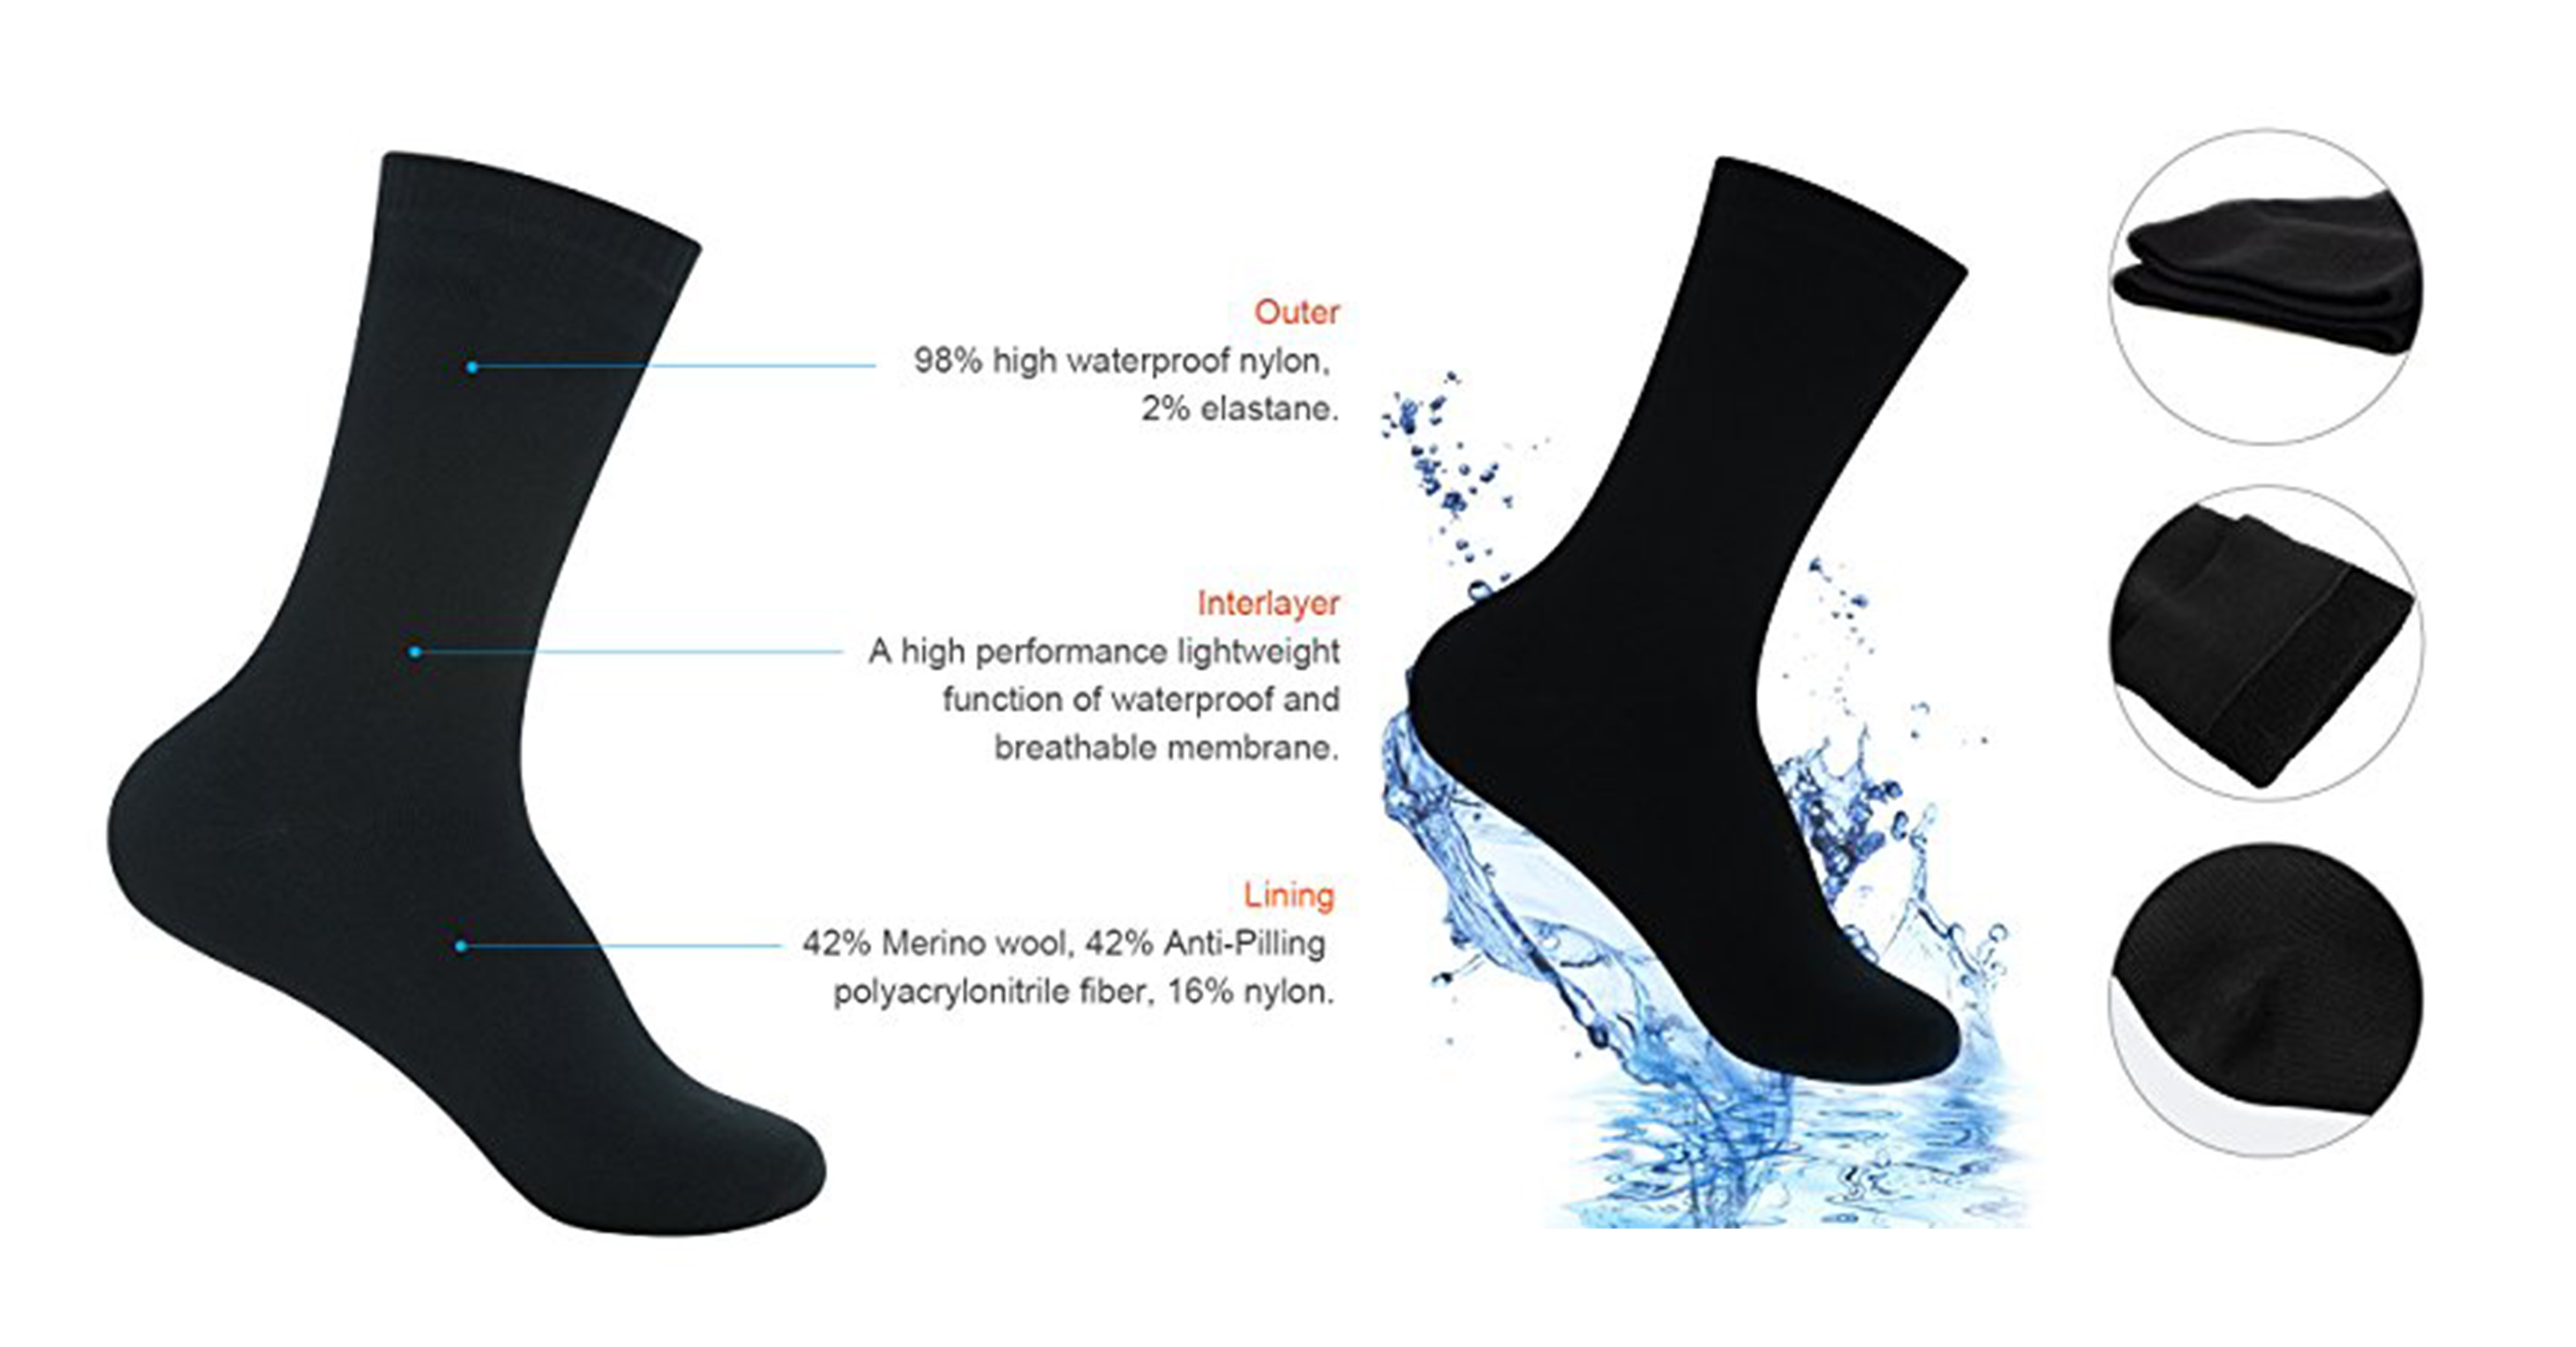 Rgusen Waterproof Socks, Unisex Mid-Calf and Ankle Waterproof & Highly Breathable Athletic/Hiking/Trekking/Ski Socks